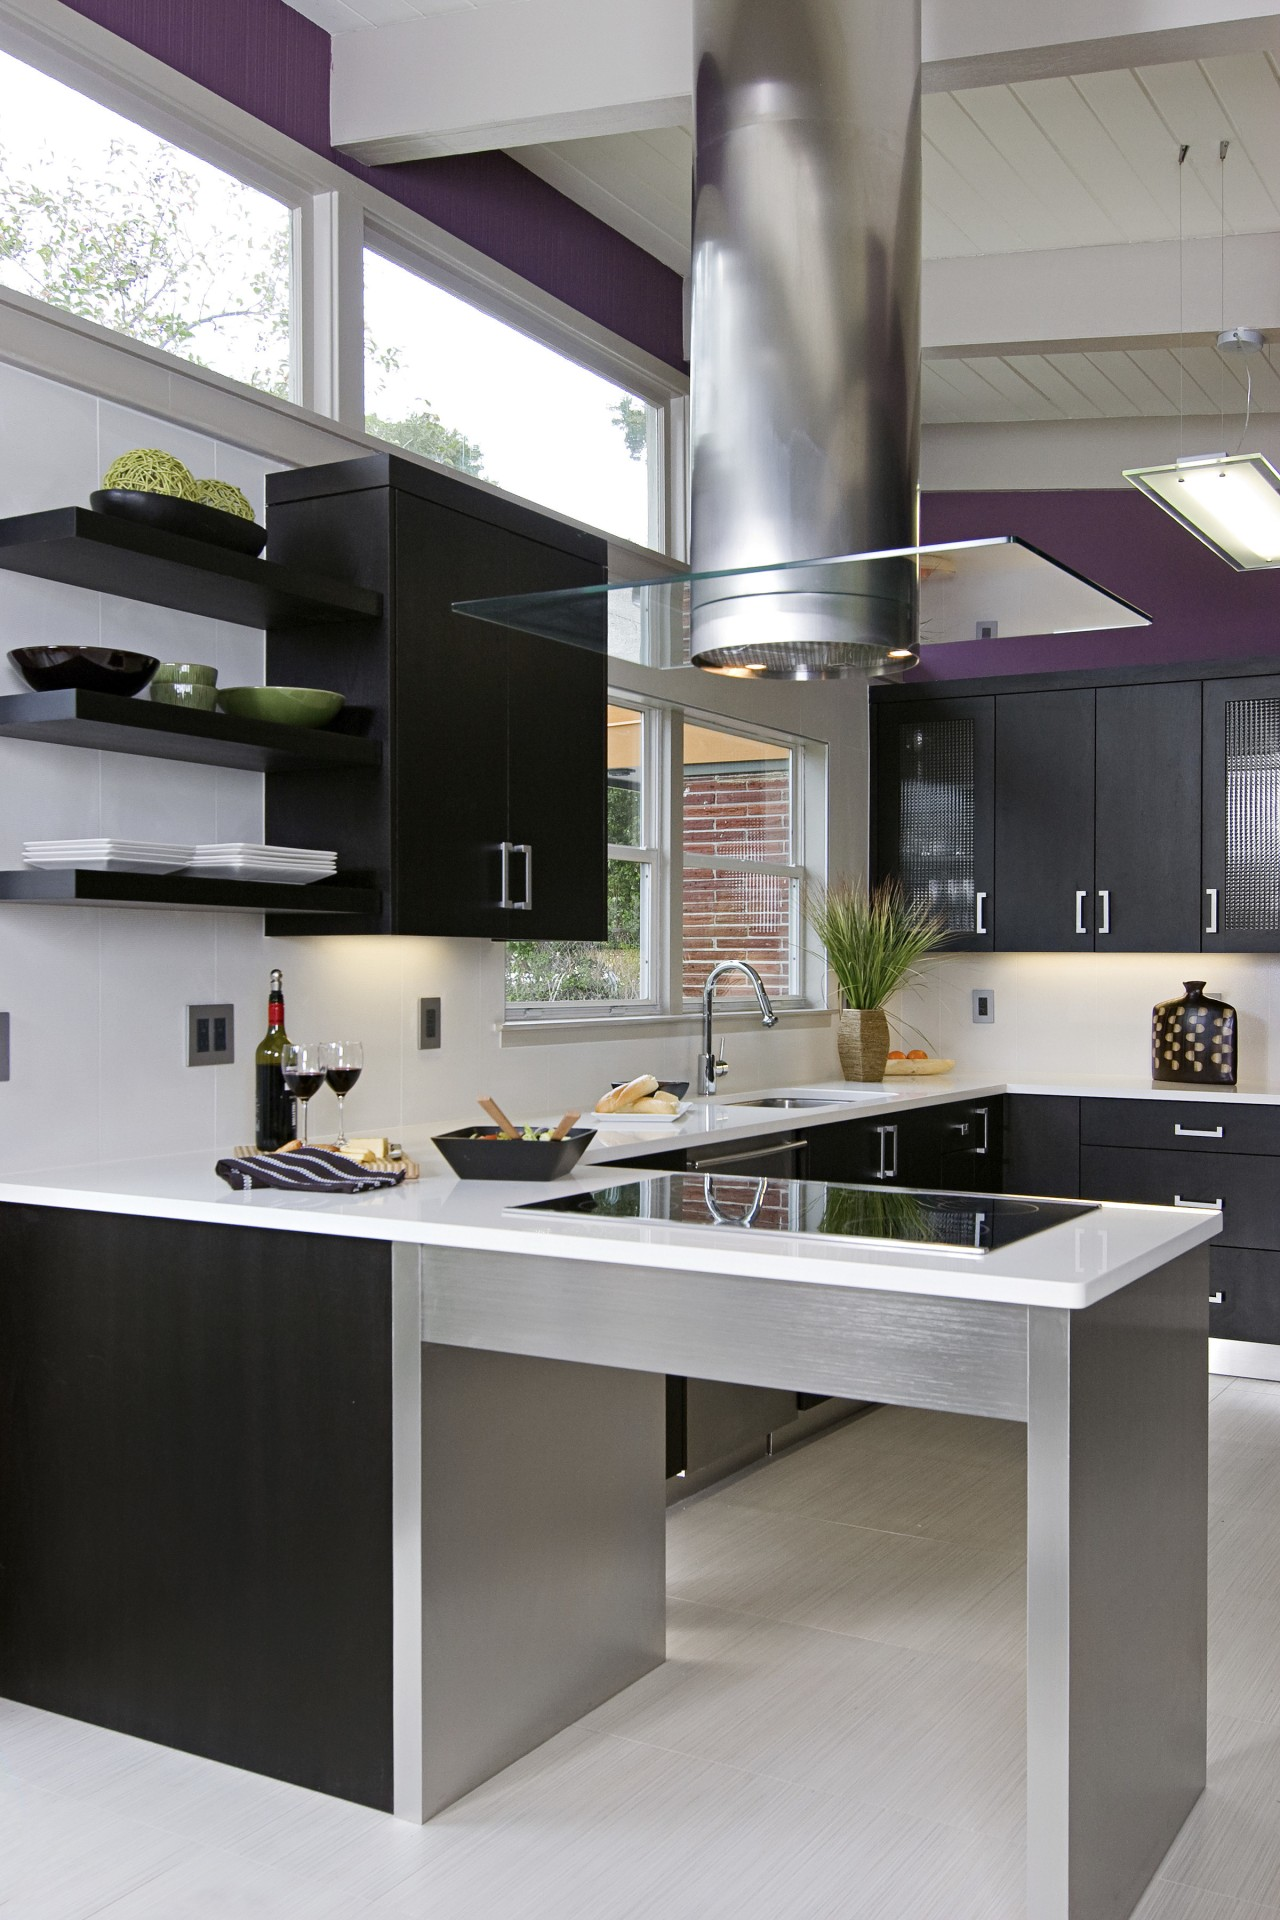 View of a remodeled kitchen which features lavender countertop, cuisine classique, interior design, kitchen, product design, gray, black